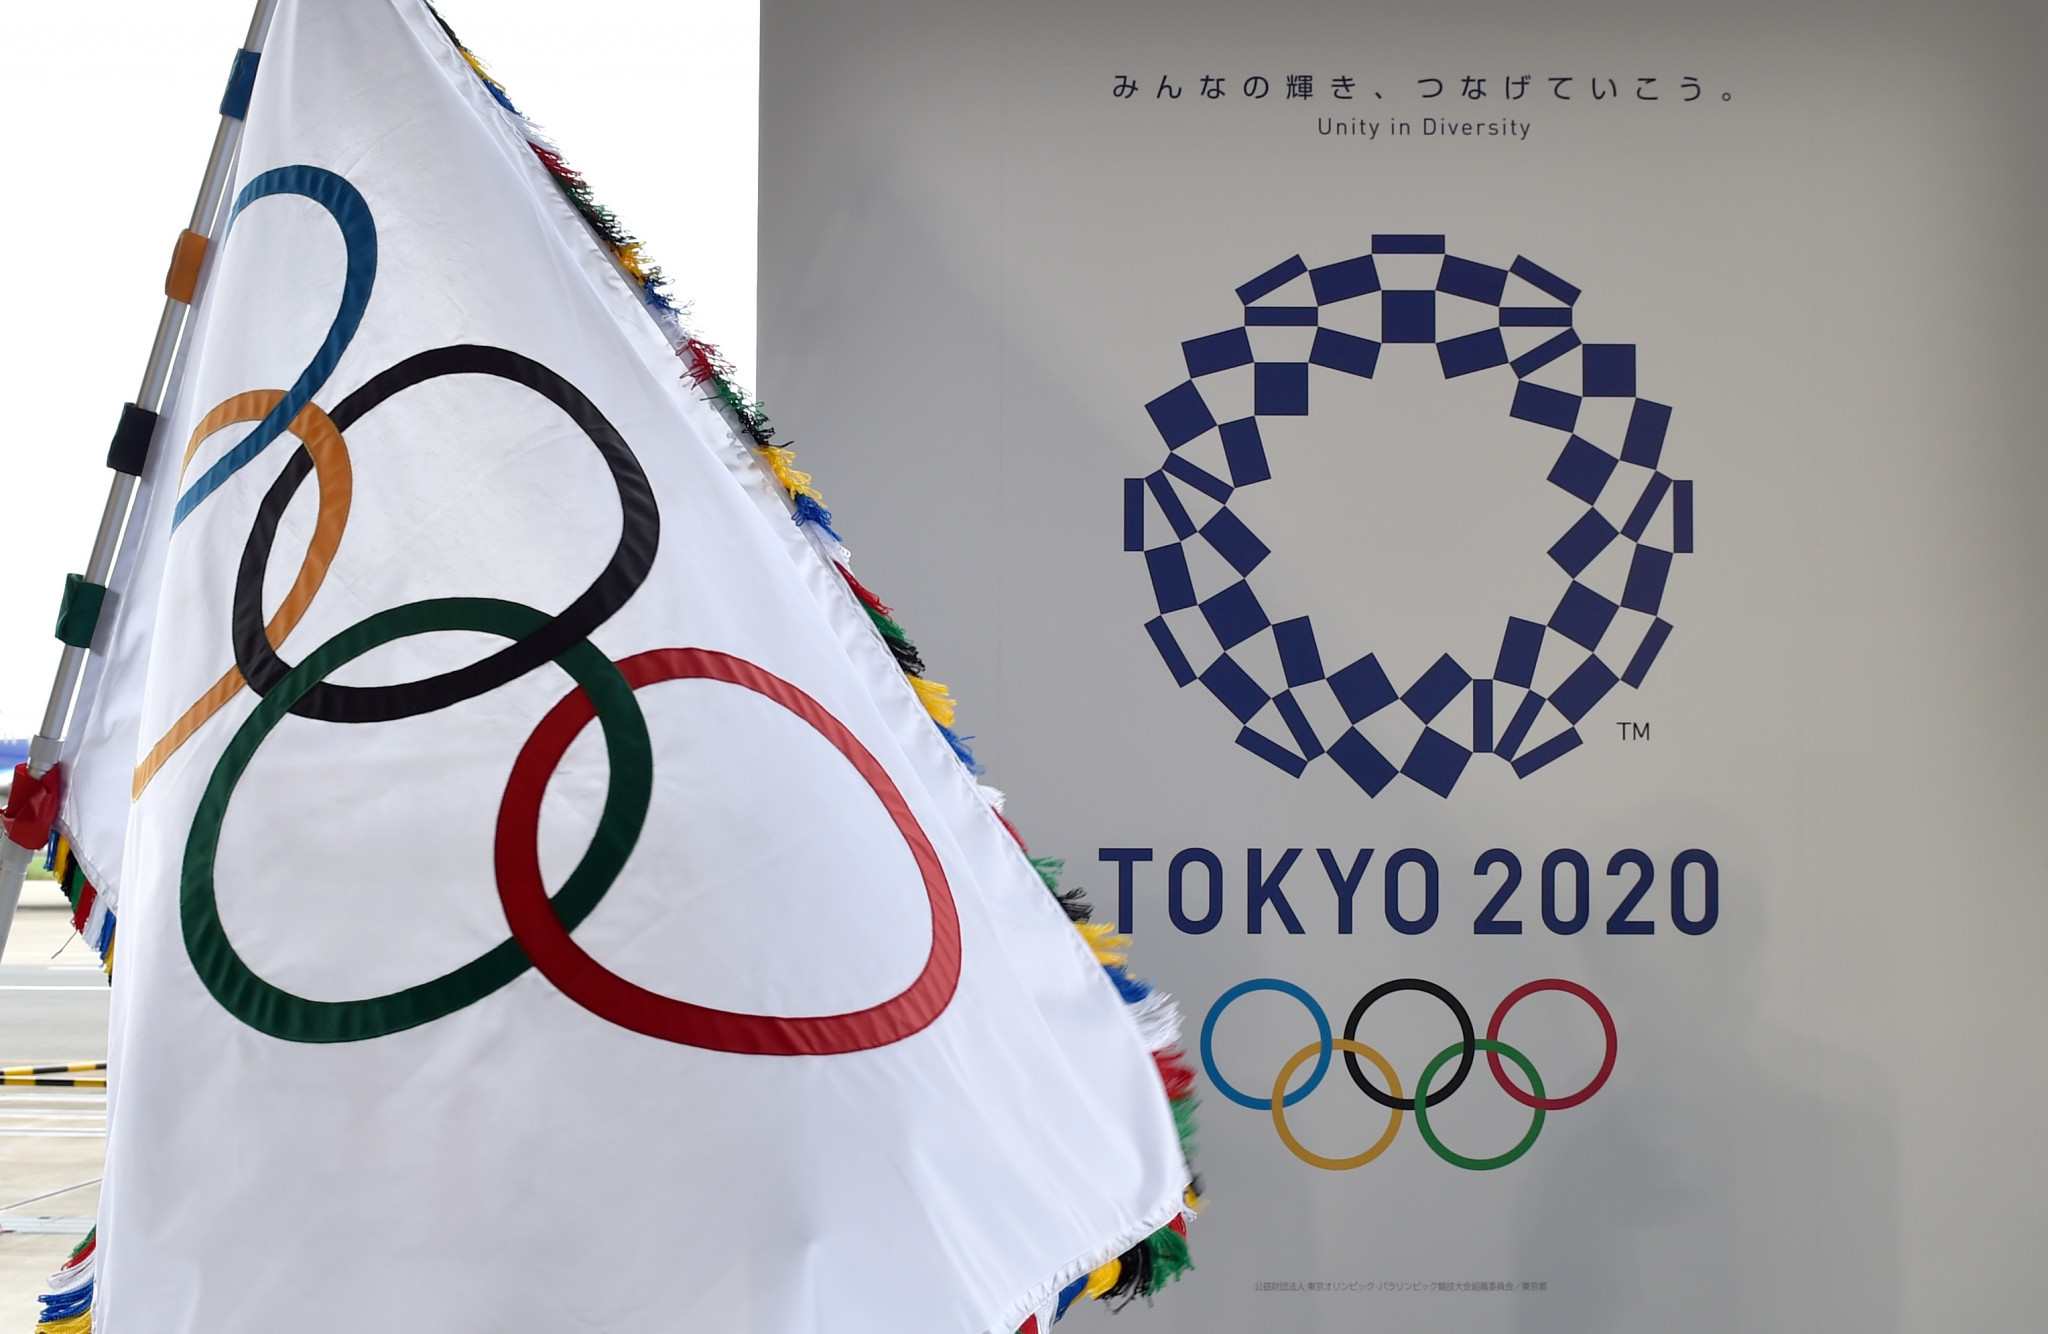 More volunteers needed for city roles at Tokyo 2020